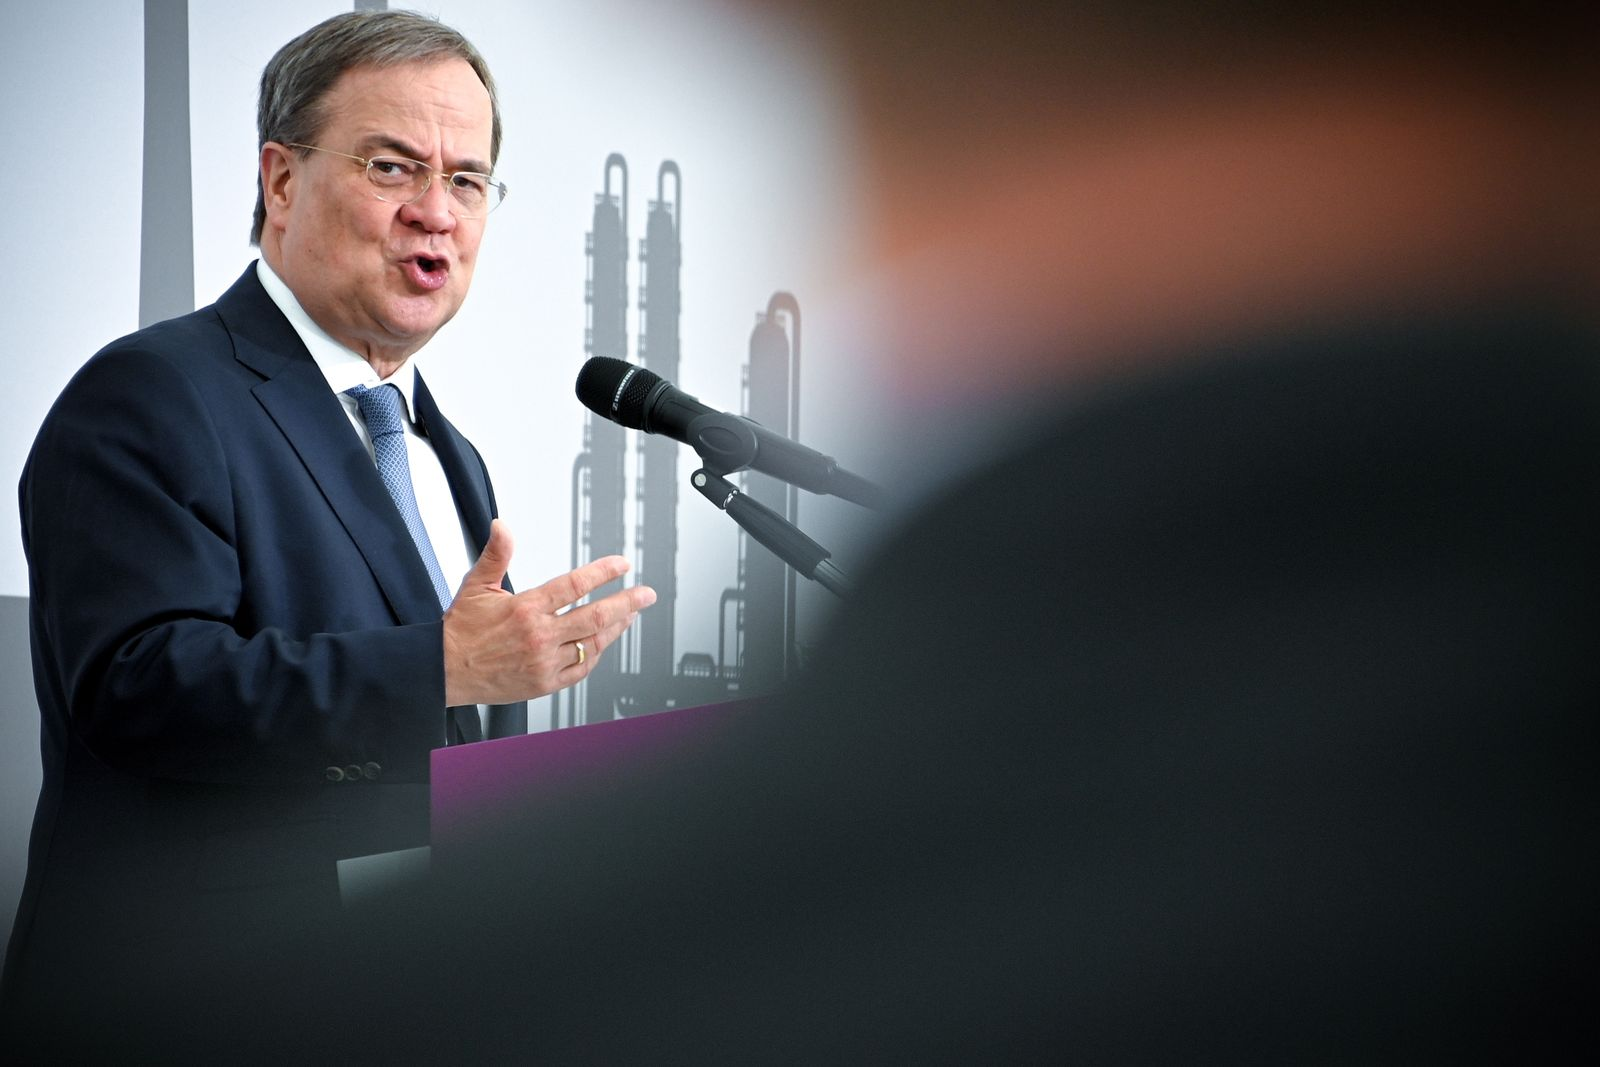 German CDU party leader Laschet opens world's largest polyamide 12 plant at Marl Chemical Park